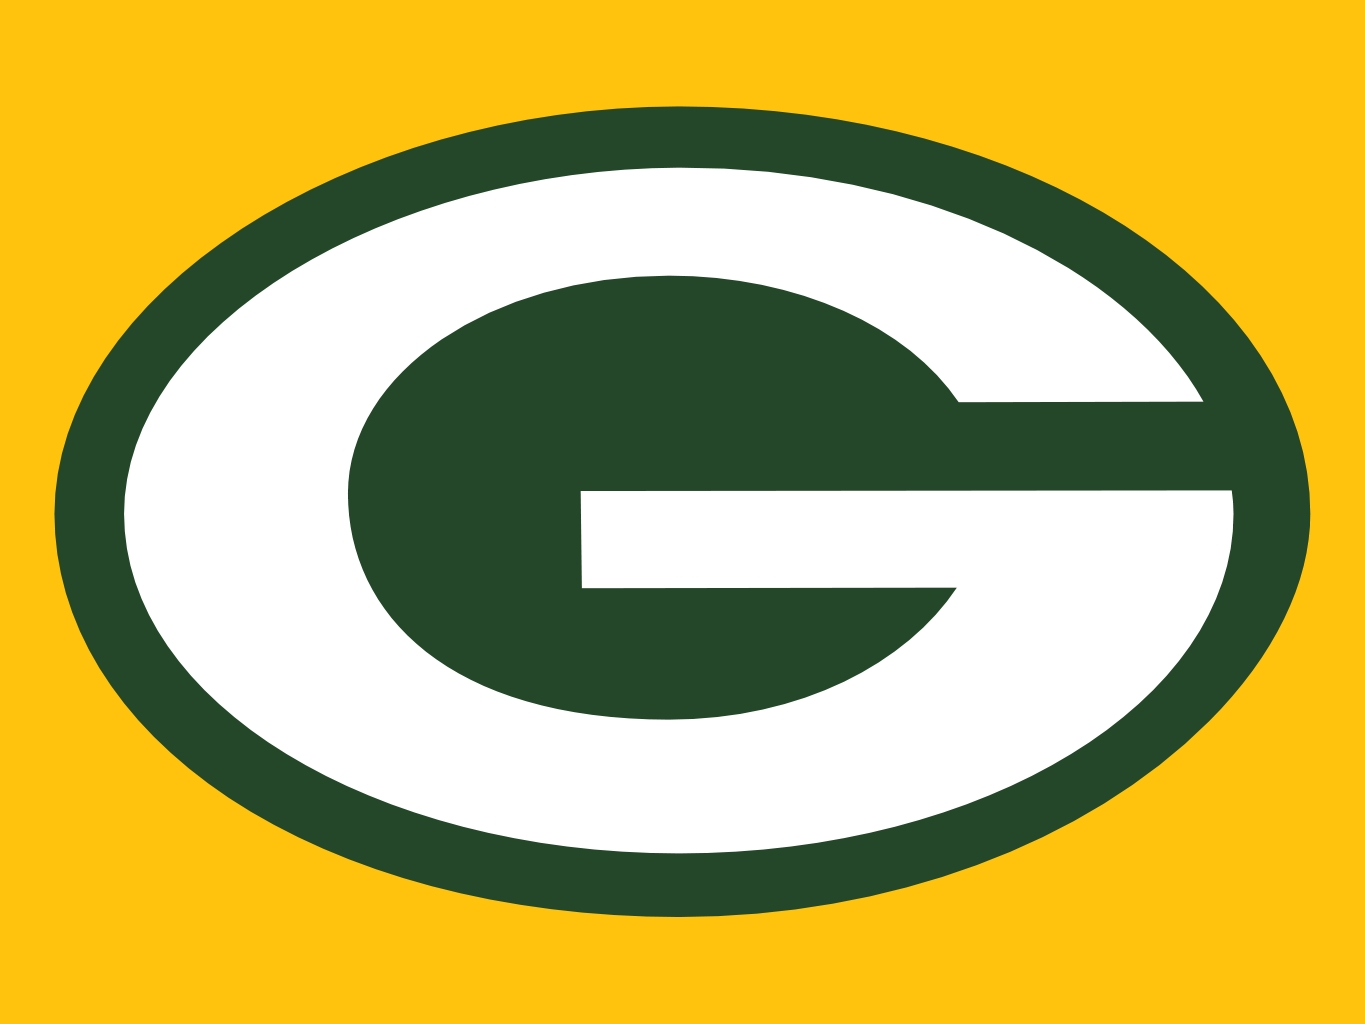 Green Bay Packer Logo Clip Art - ClipArt Best | taylor | Pinterest | Logos, Bays and Packers